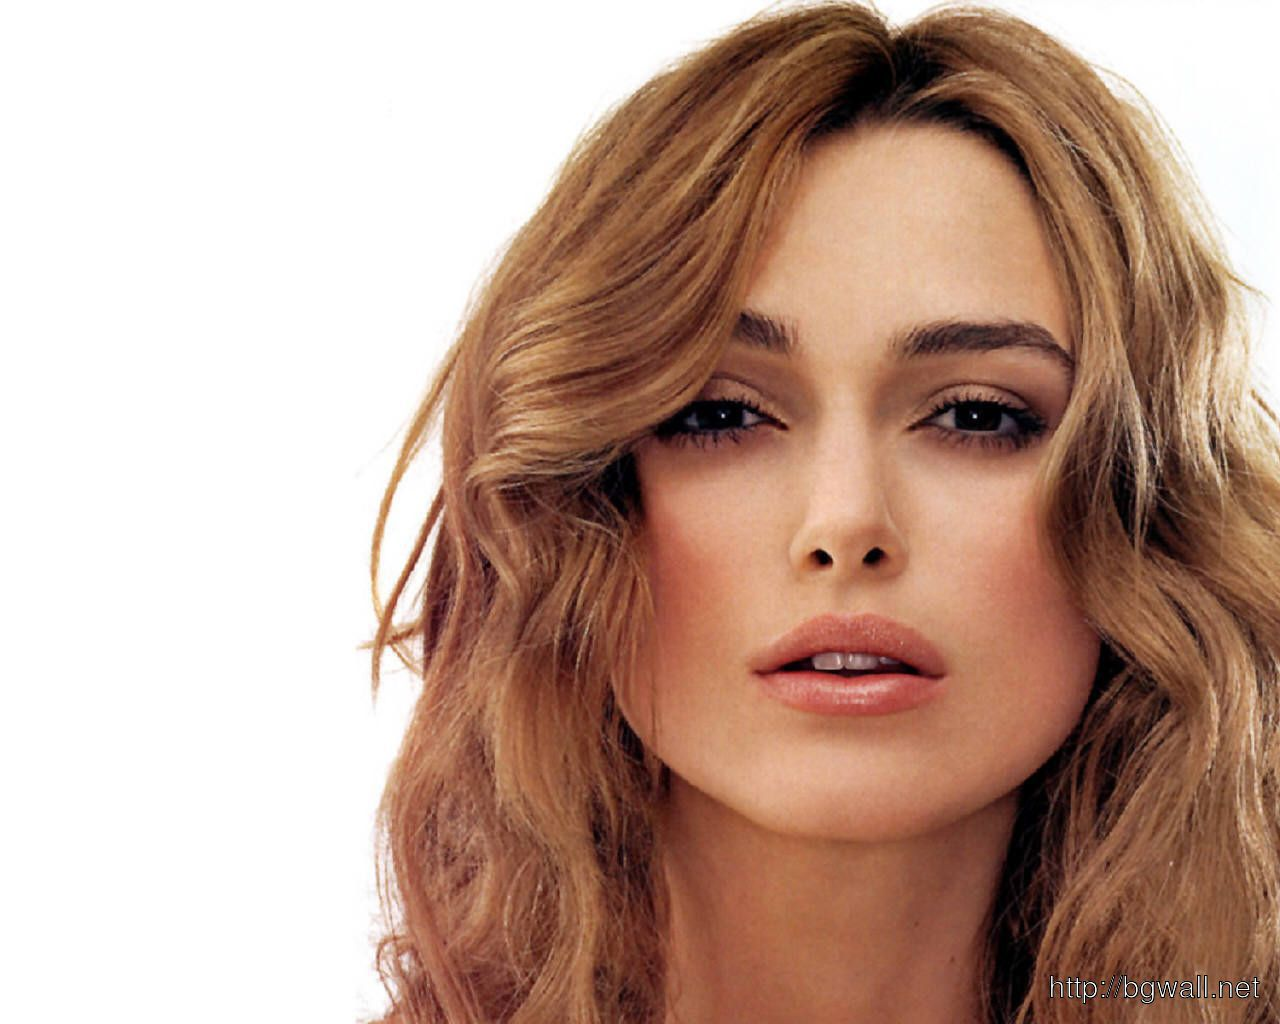 Keira Knightley 16 Full Size